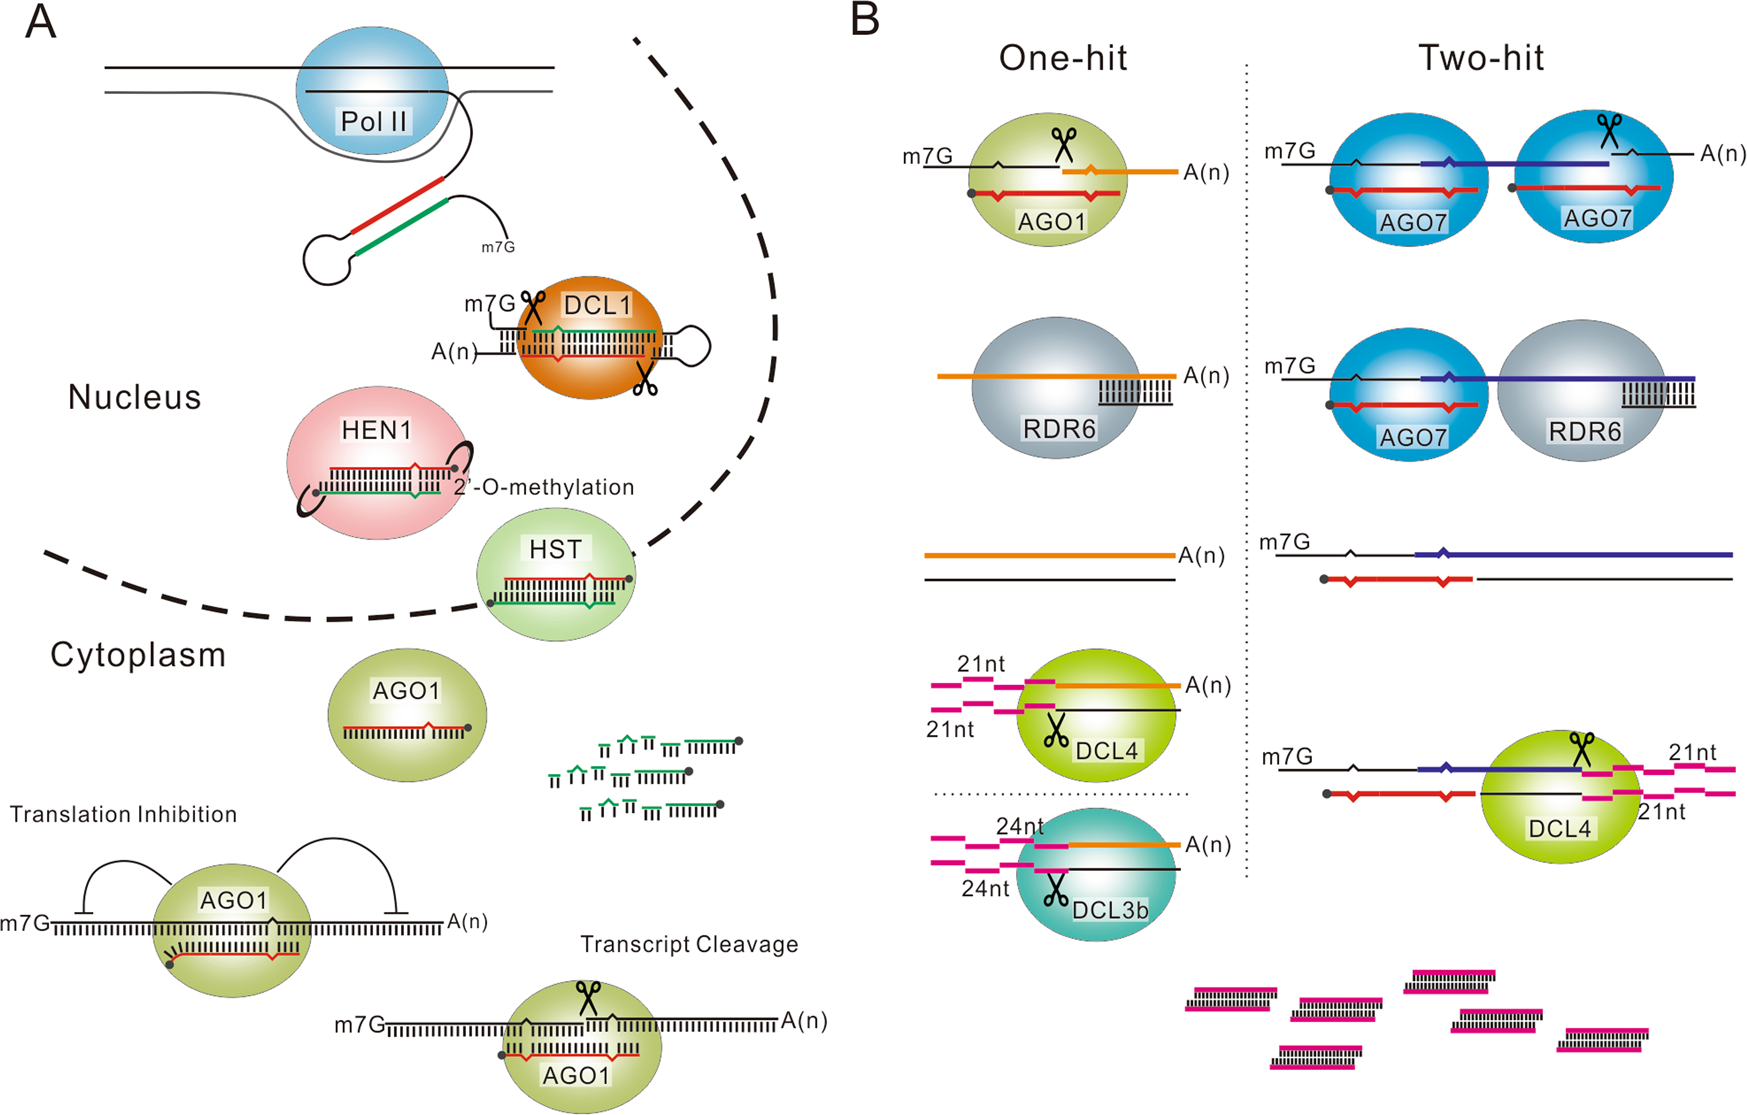 Small Rnas Emerging Regulators Critical For The Development Of